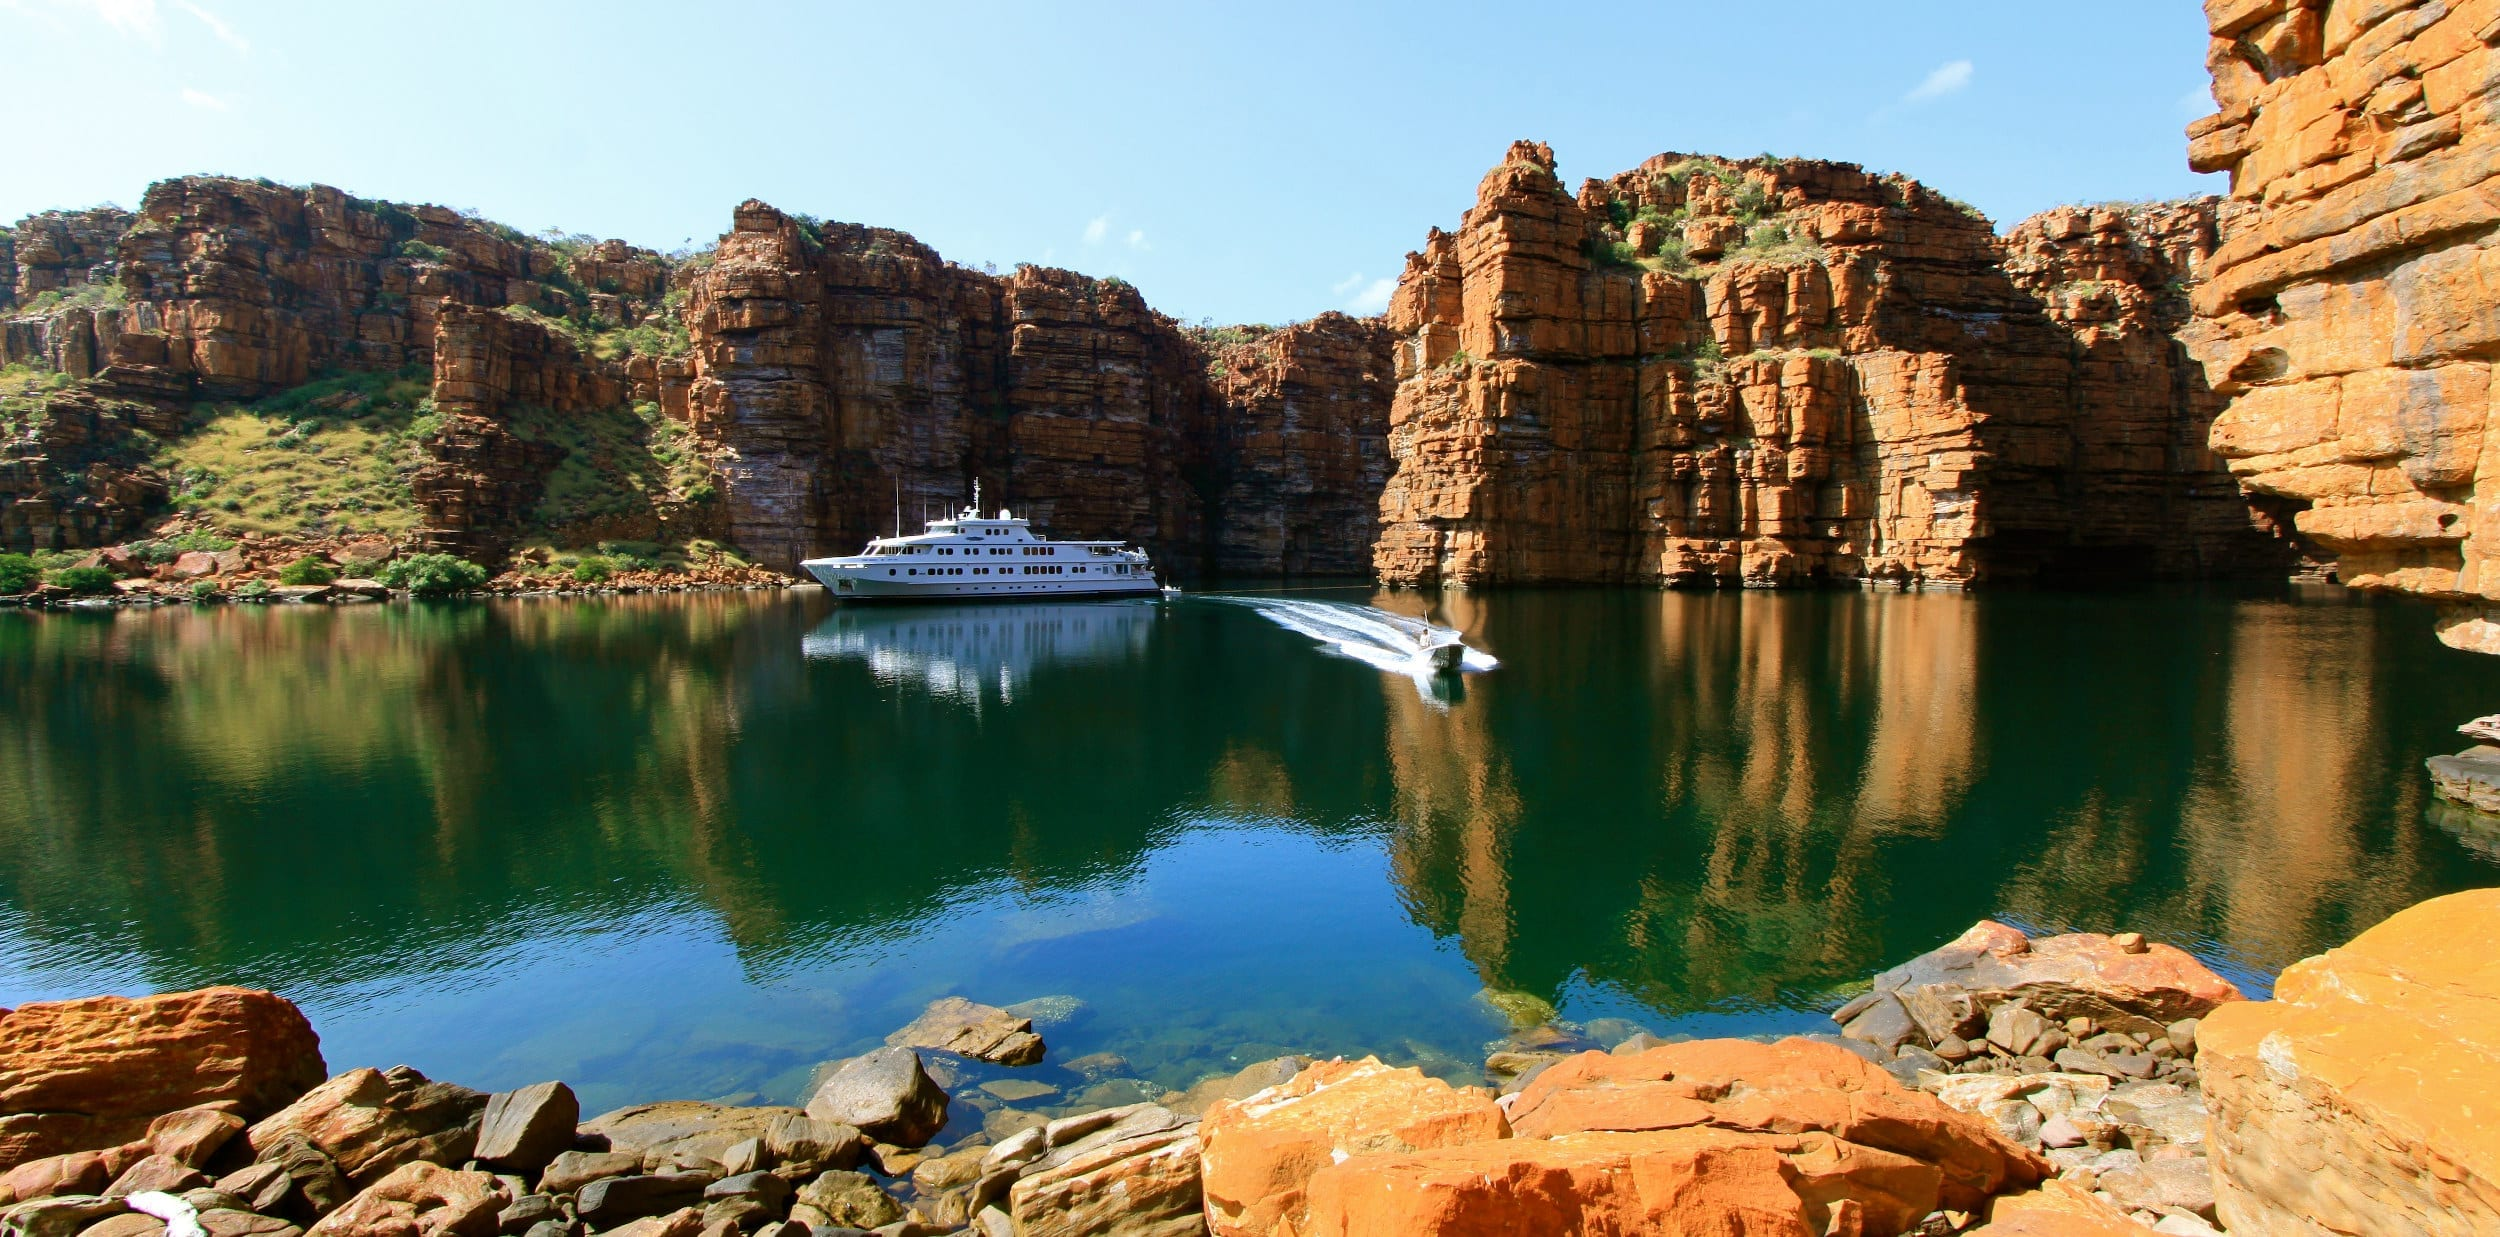 True North anchored by cliffs